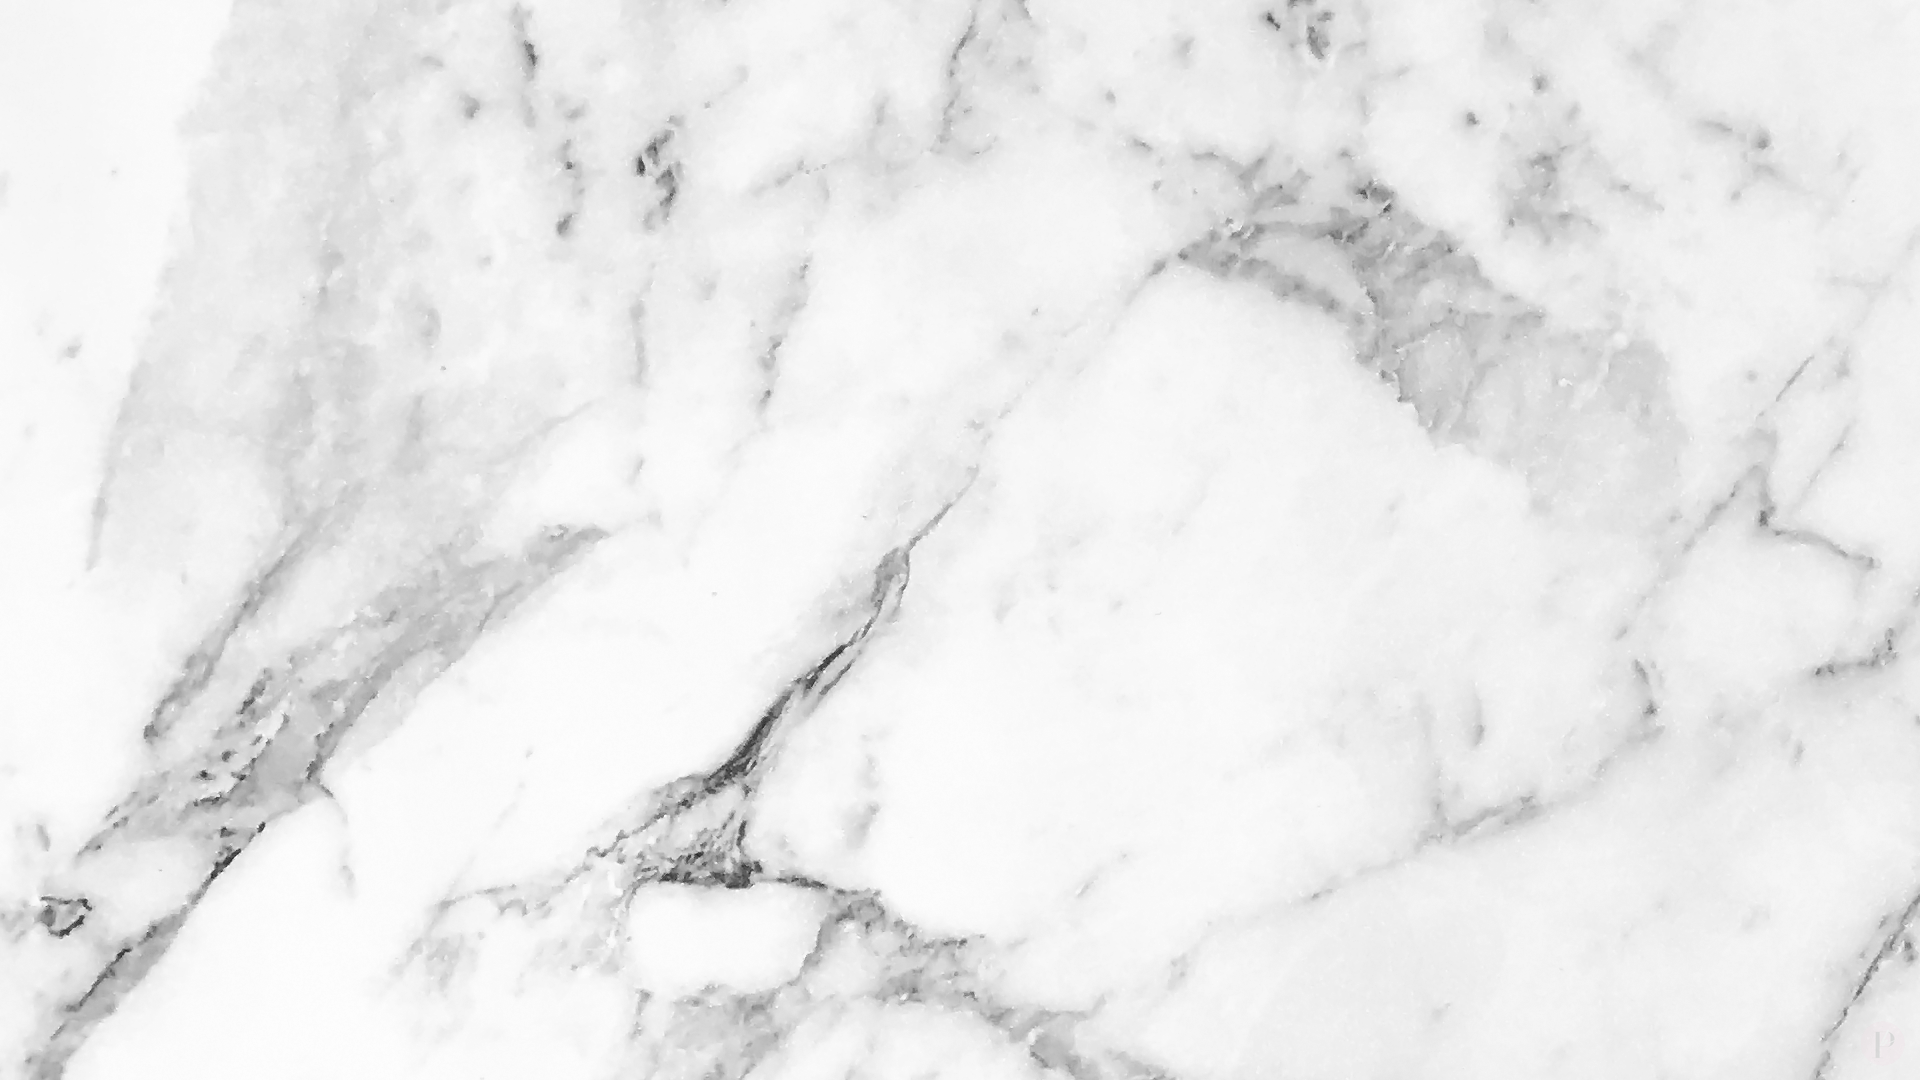 White Marble Iphone Wallpapers Hd 15+